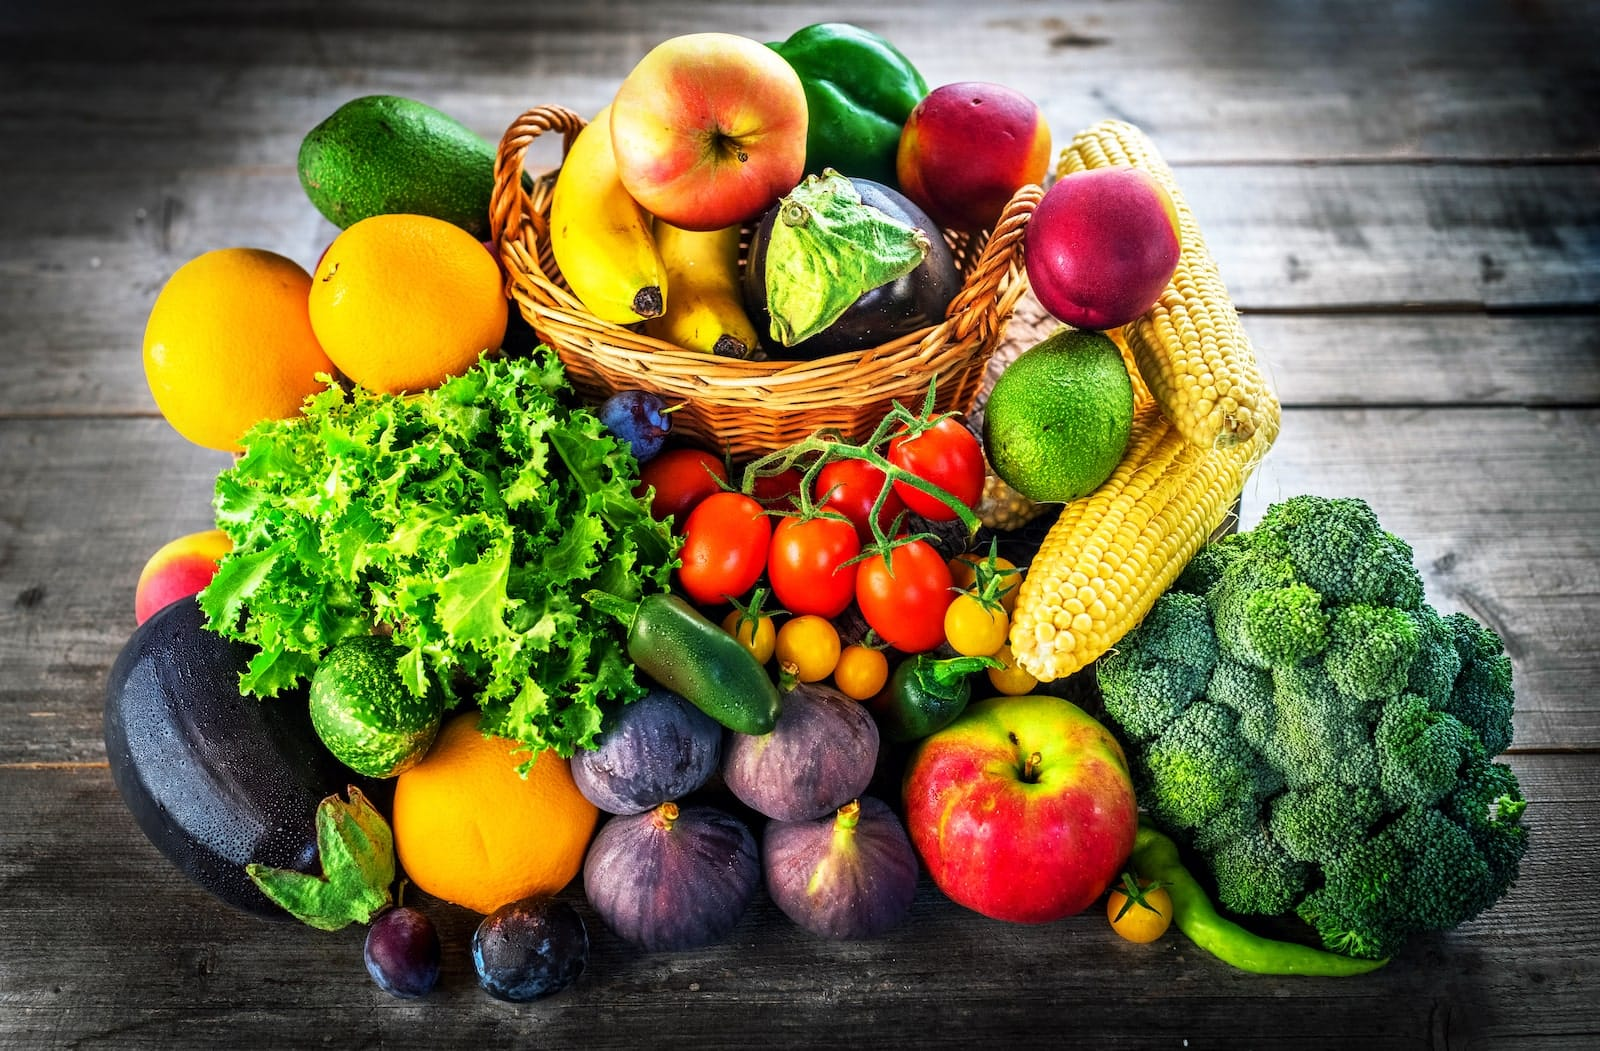 nutrients depleting fruits and vegetables vitamins and minerals plant-based